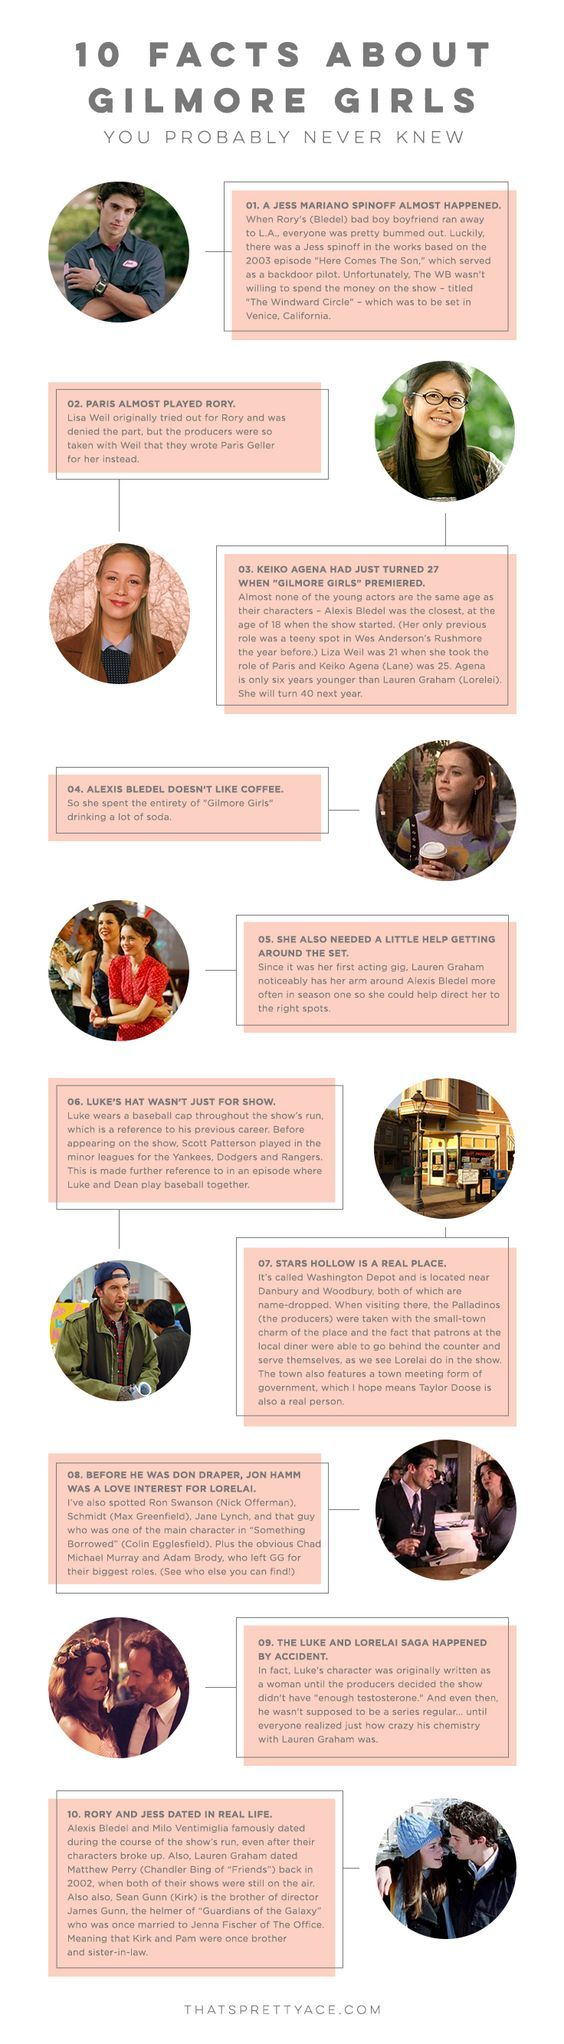 We bet you can pass the hardest Gilmore Girls trivia quiz of all time!